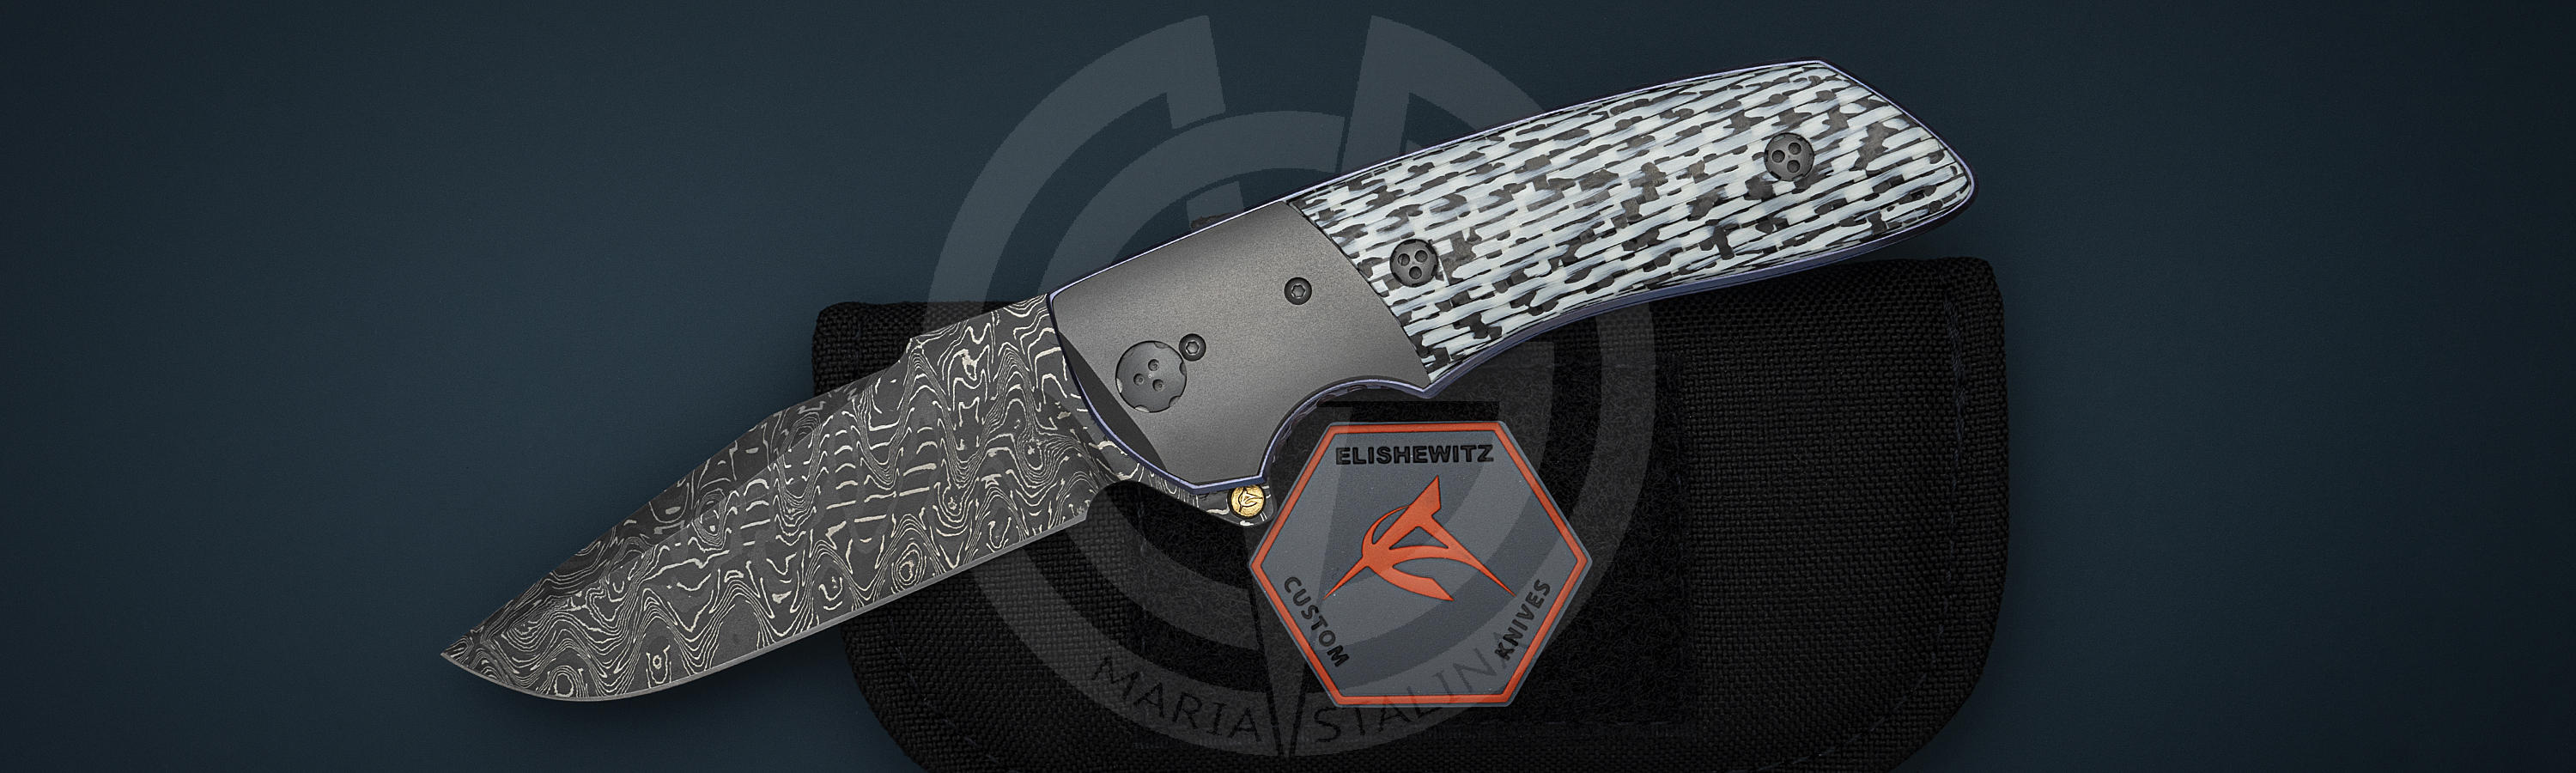 Omega M2 knife with author case